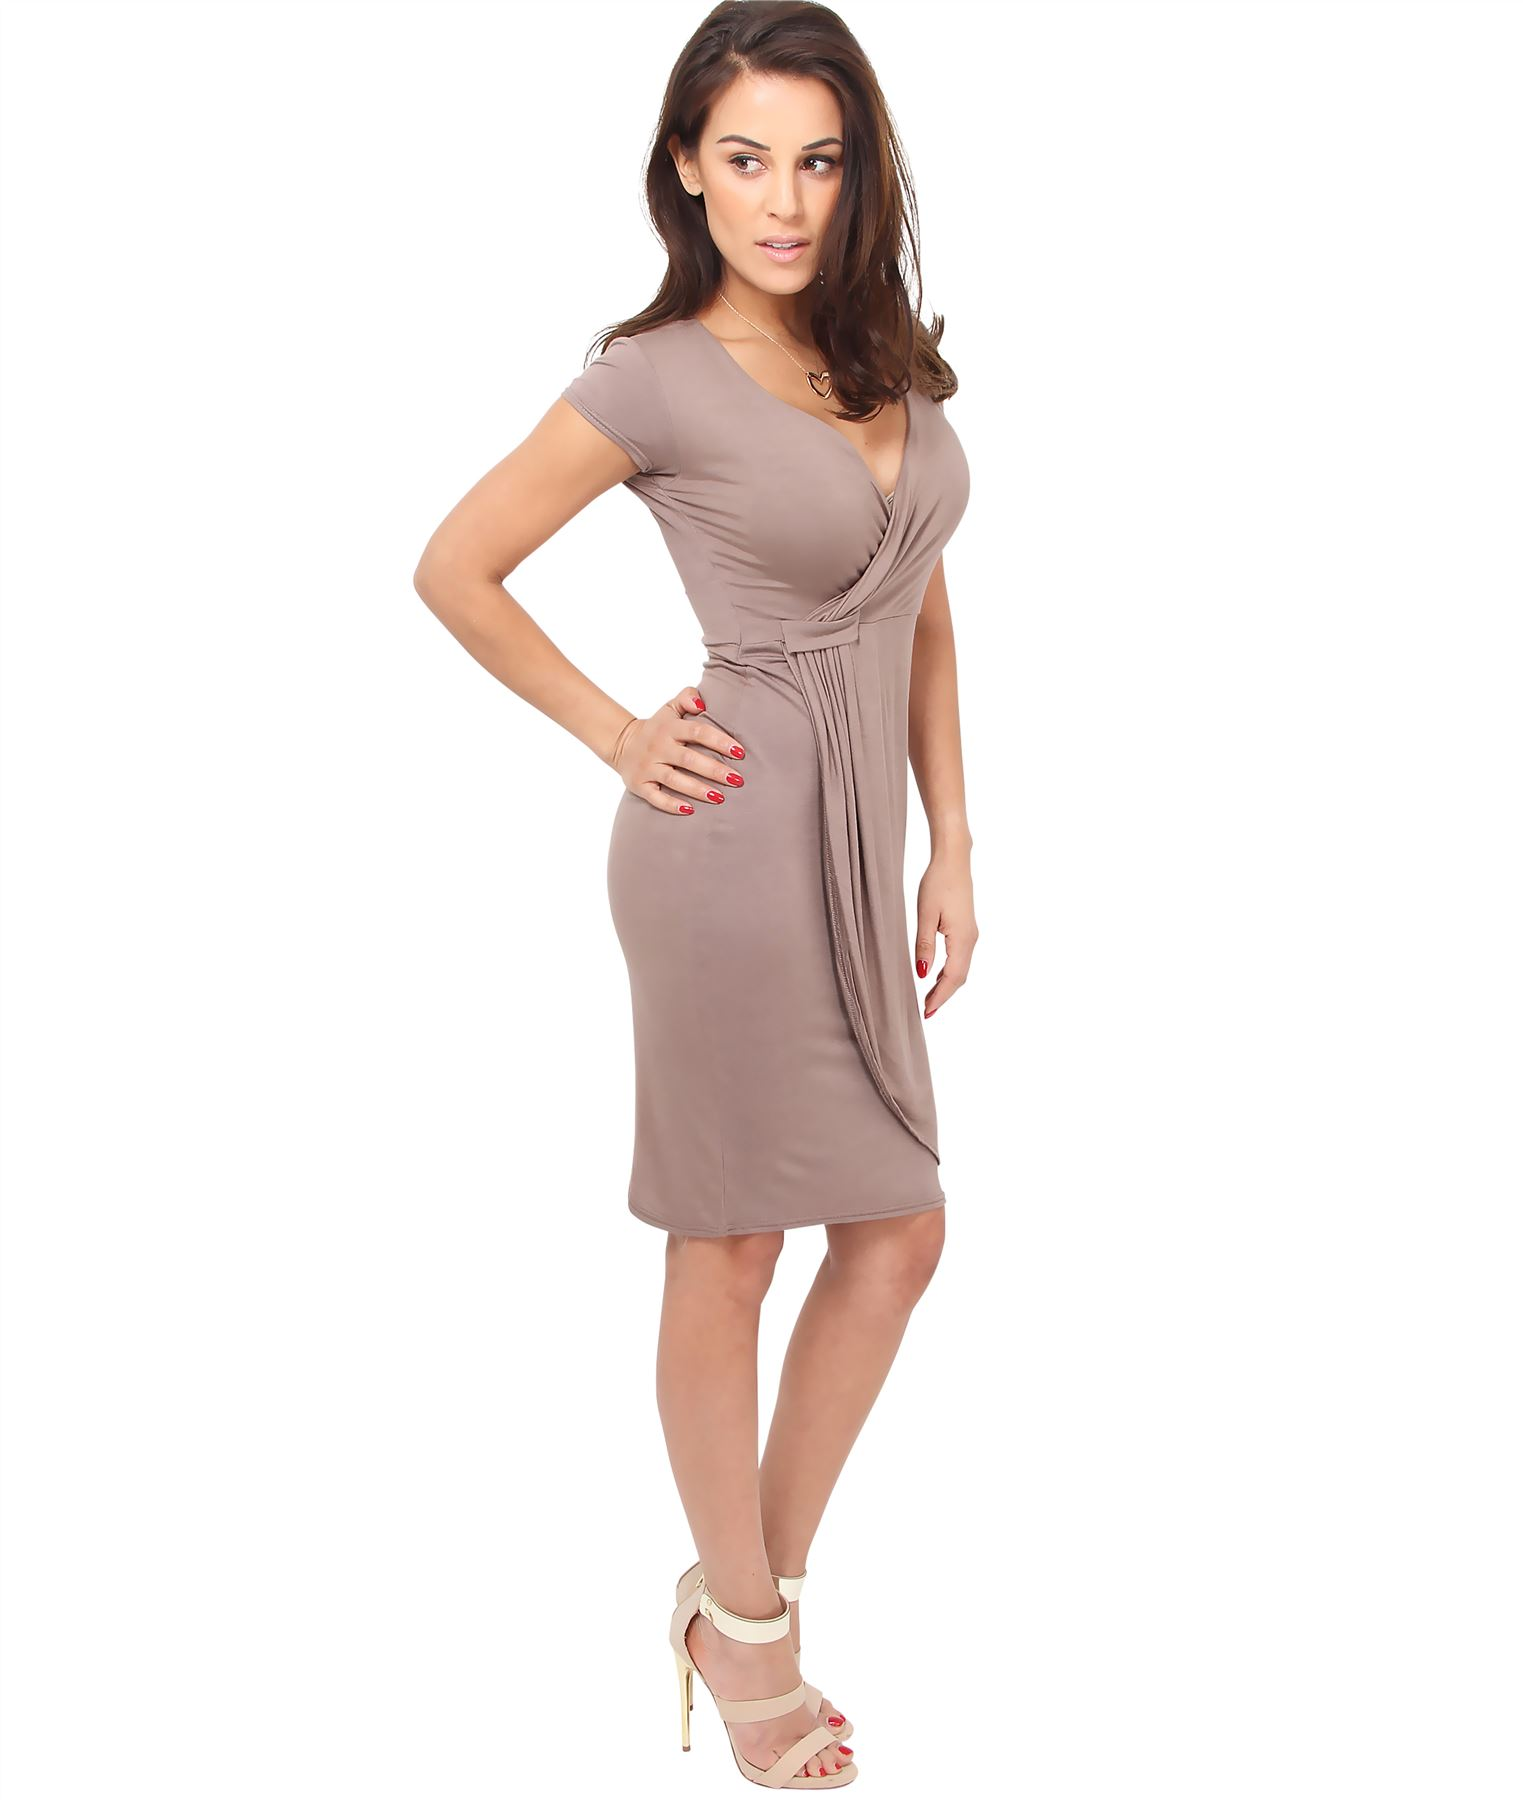 Womens-Ladies-V-Neck-Wrap-Midi-Dress-Front-Pleated-Skirt-Top-Cap-Sleeve-Party thumbnail 12